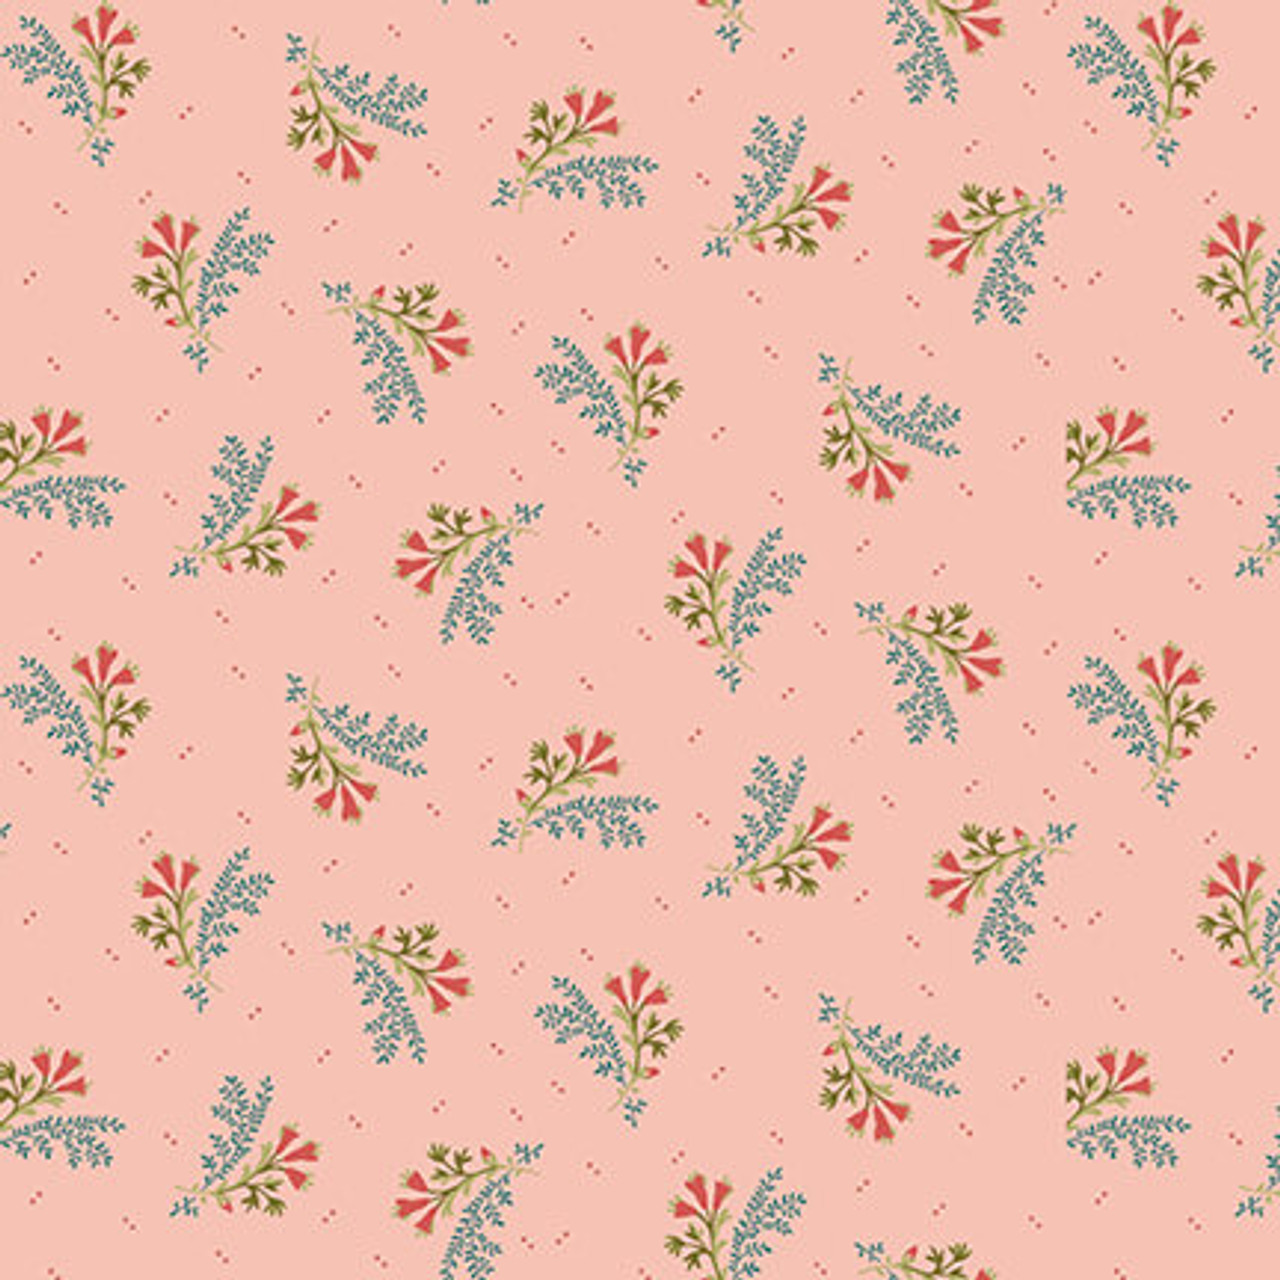 Tarrytown by Michelle Yeo : Tiny Spray - Pink